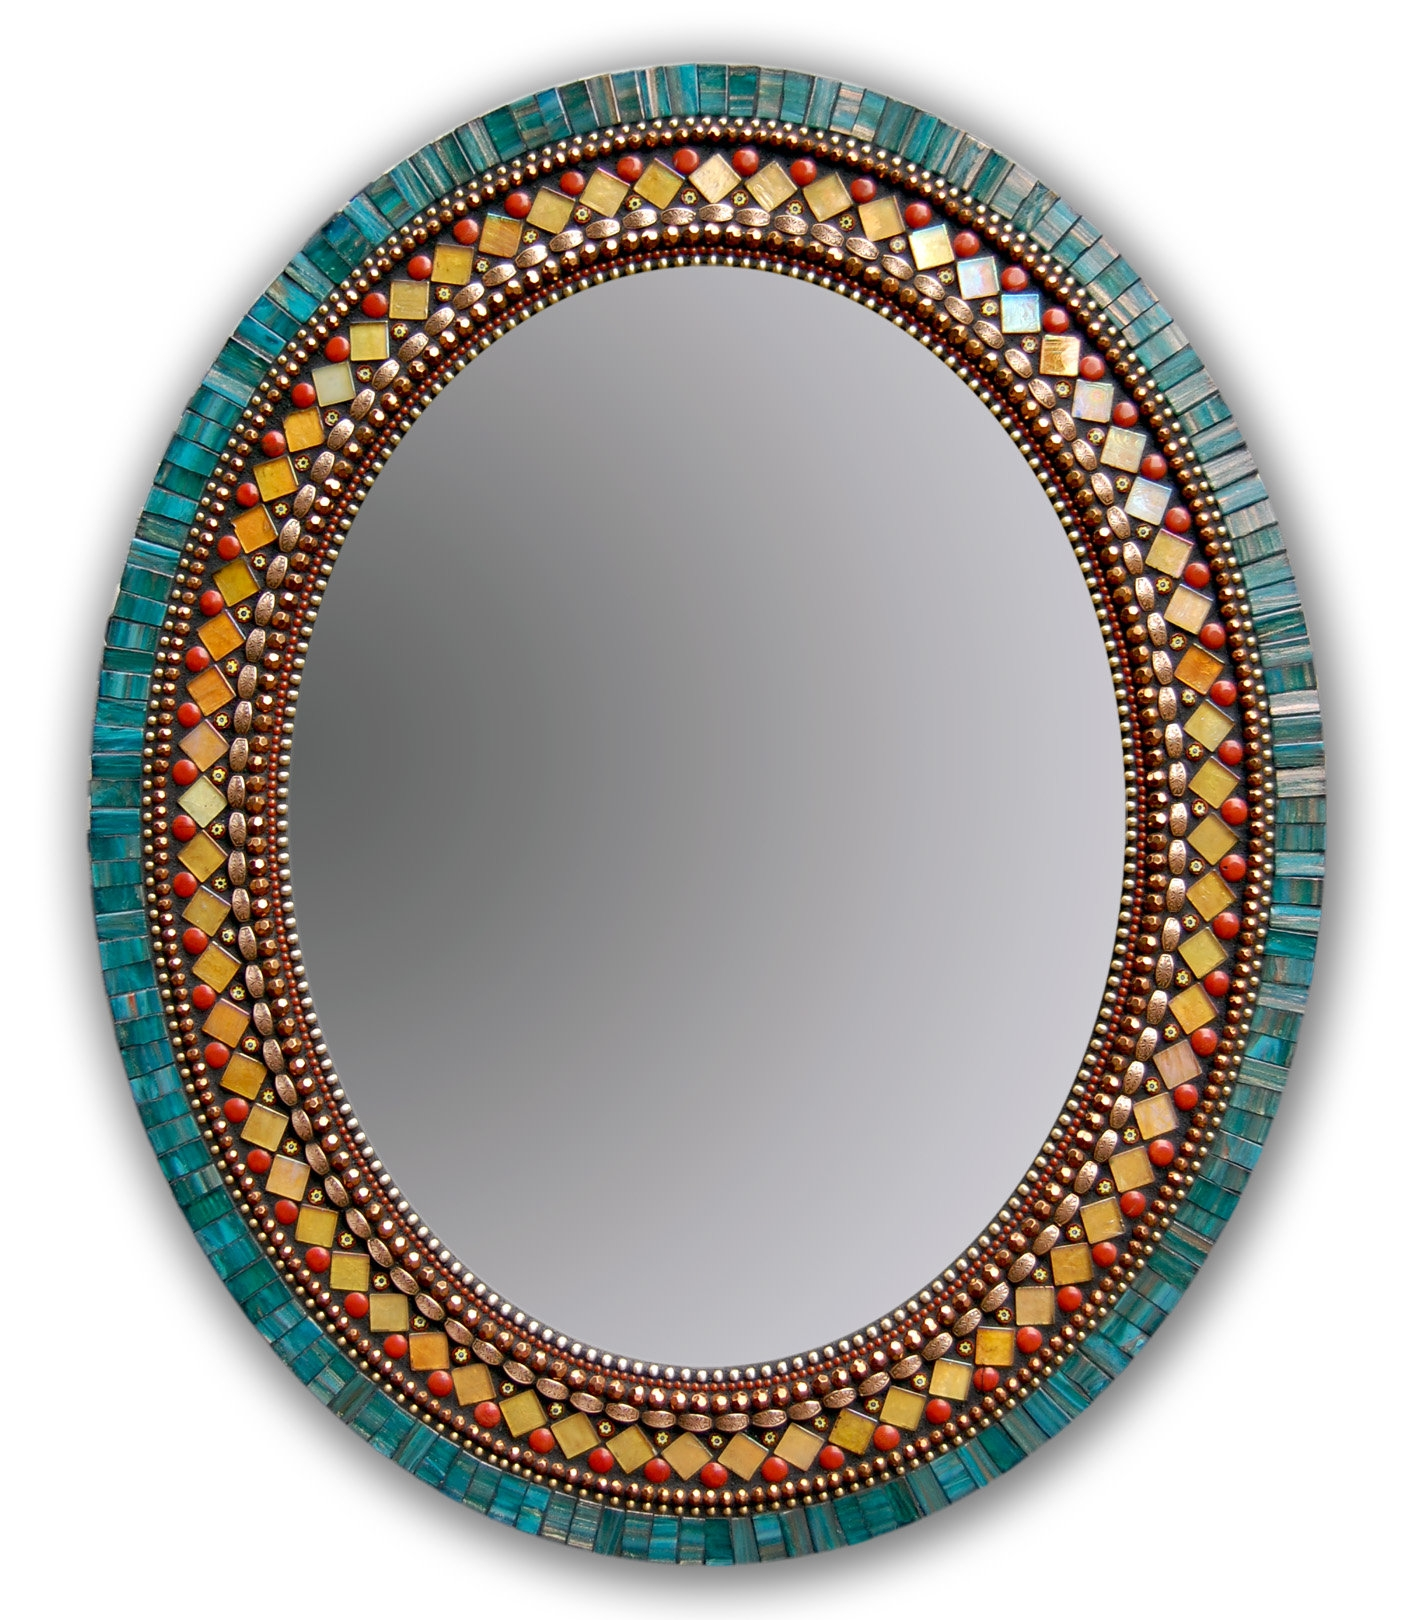 Butterfly Mirror Angie Heinrich Mosaic Mirror Artful Home For Mosaic Mirrors For Sale (Image 2 of 15)